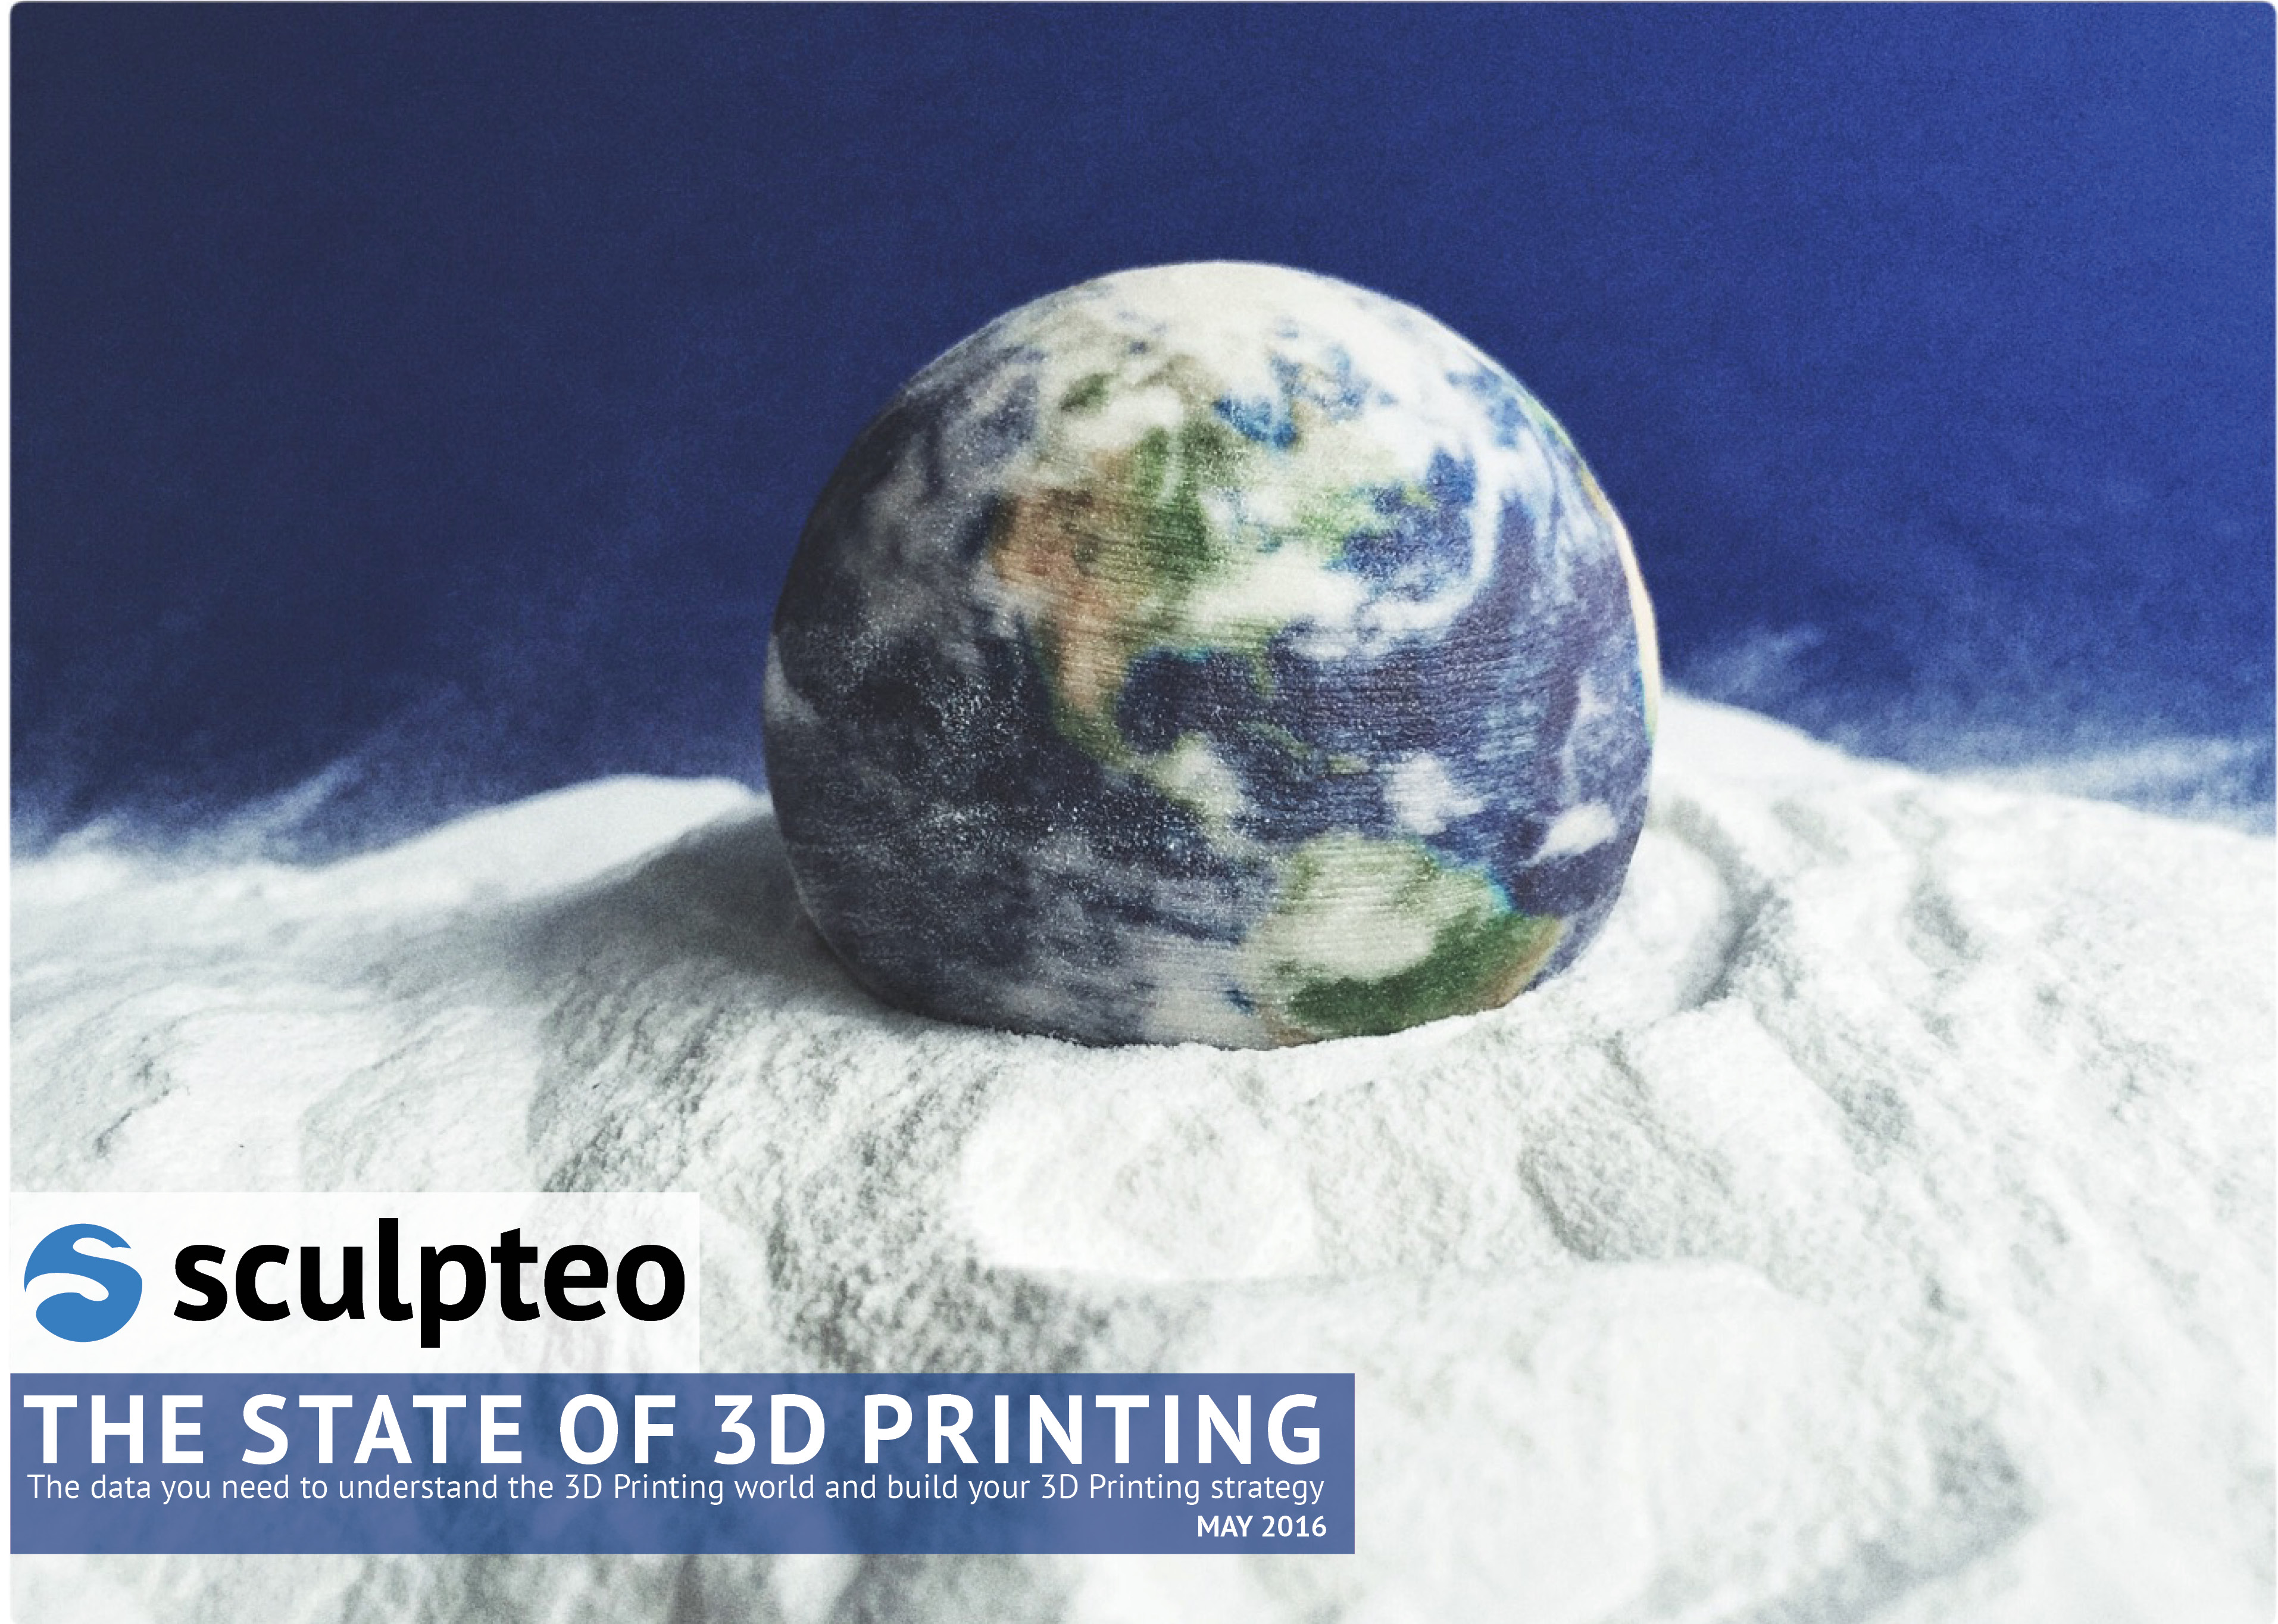 Insight from the State of 3D Printing:  the year-over-year contrast